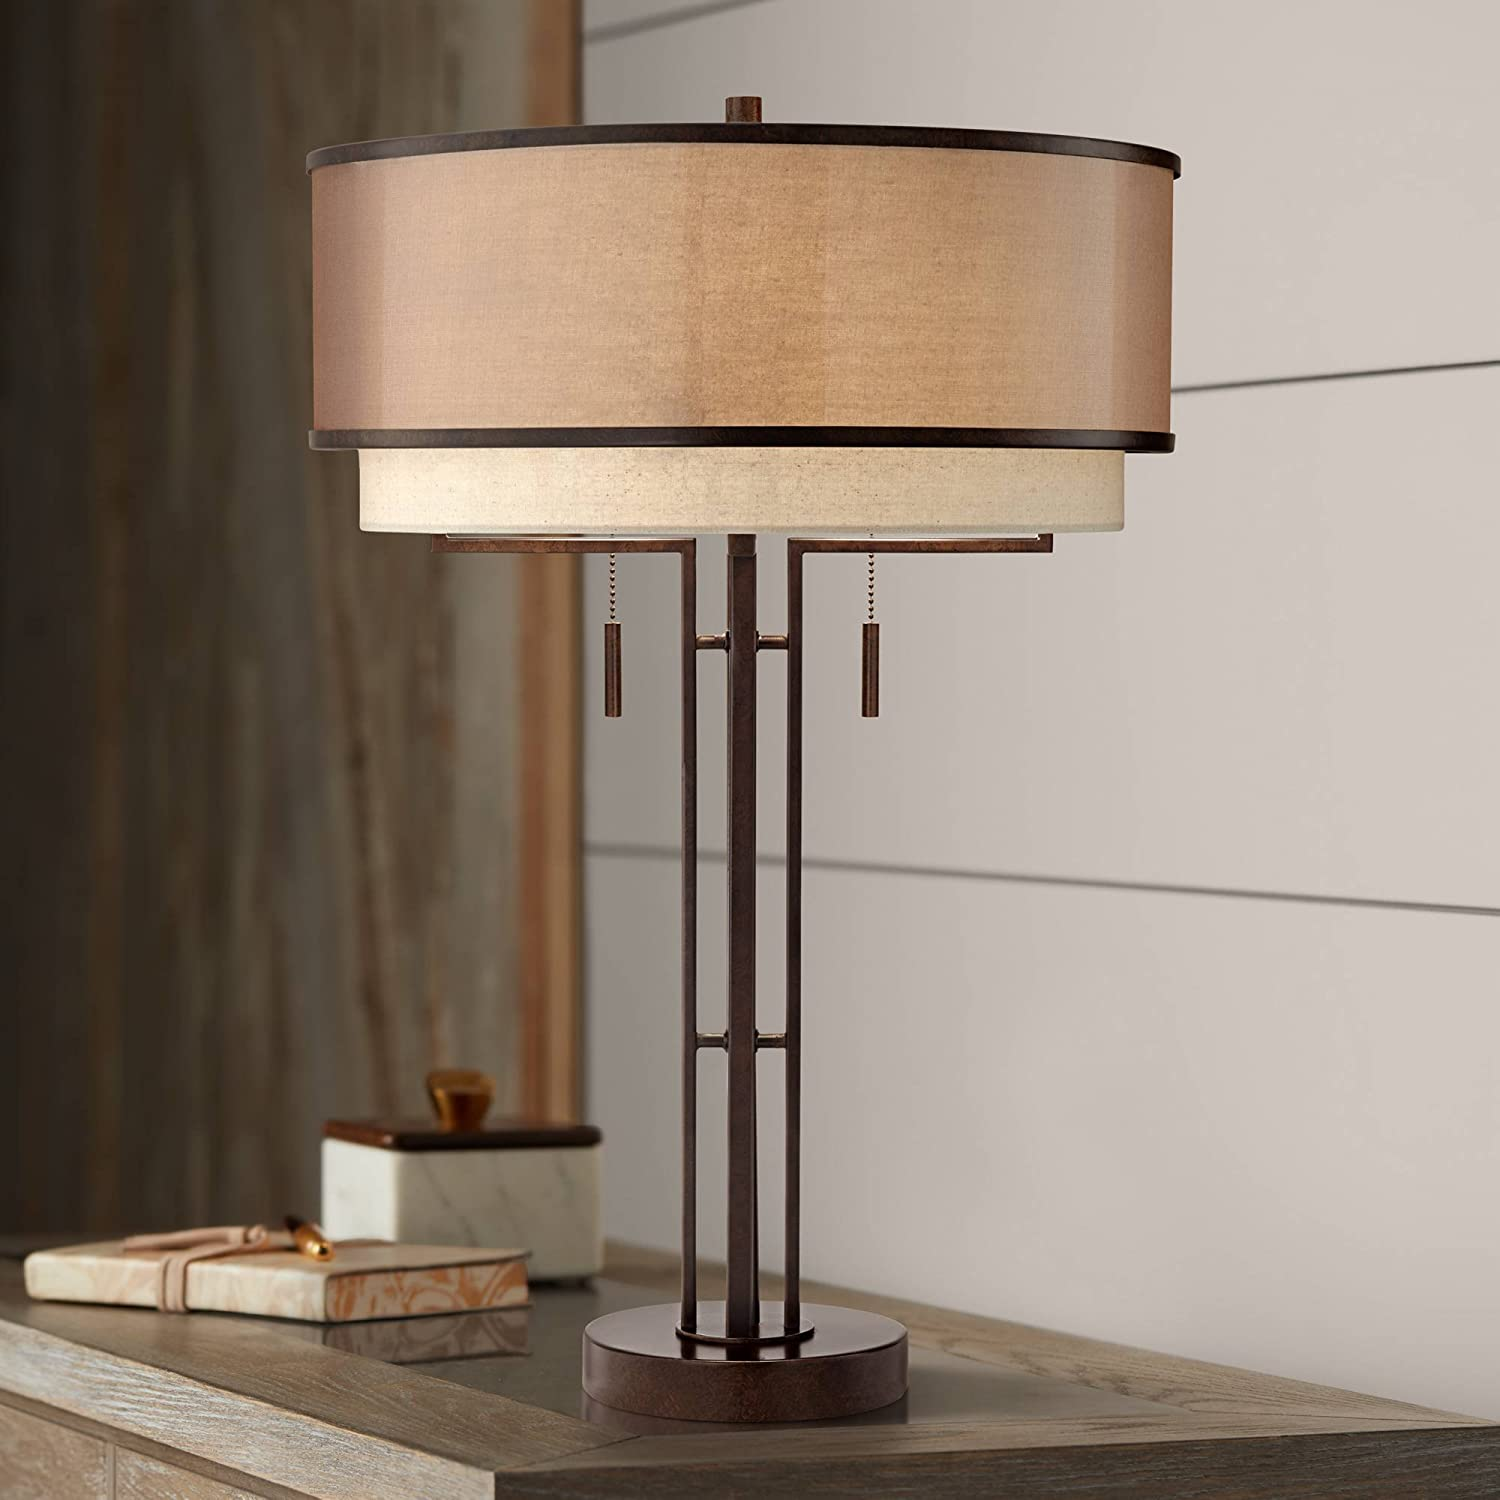 Trend 2018 And 2018 Contemporary Table Lamps 300×300.jpg